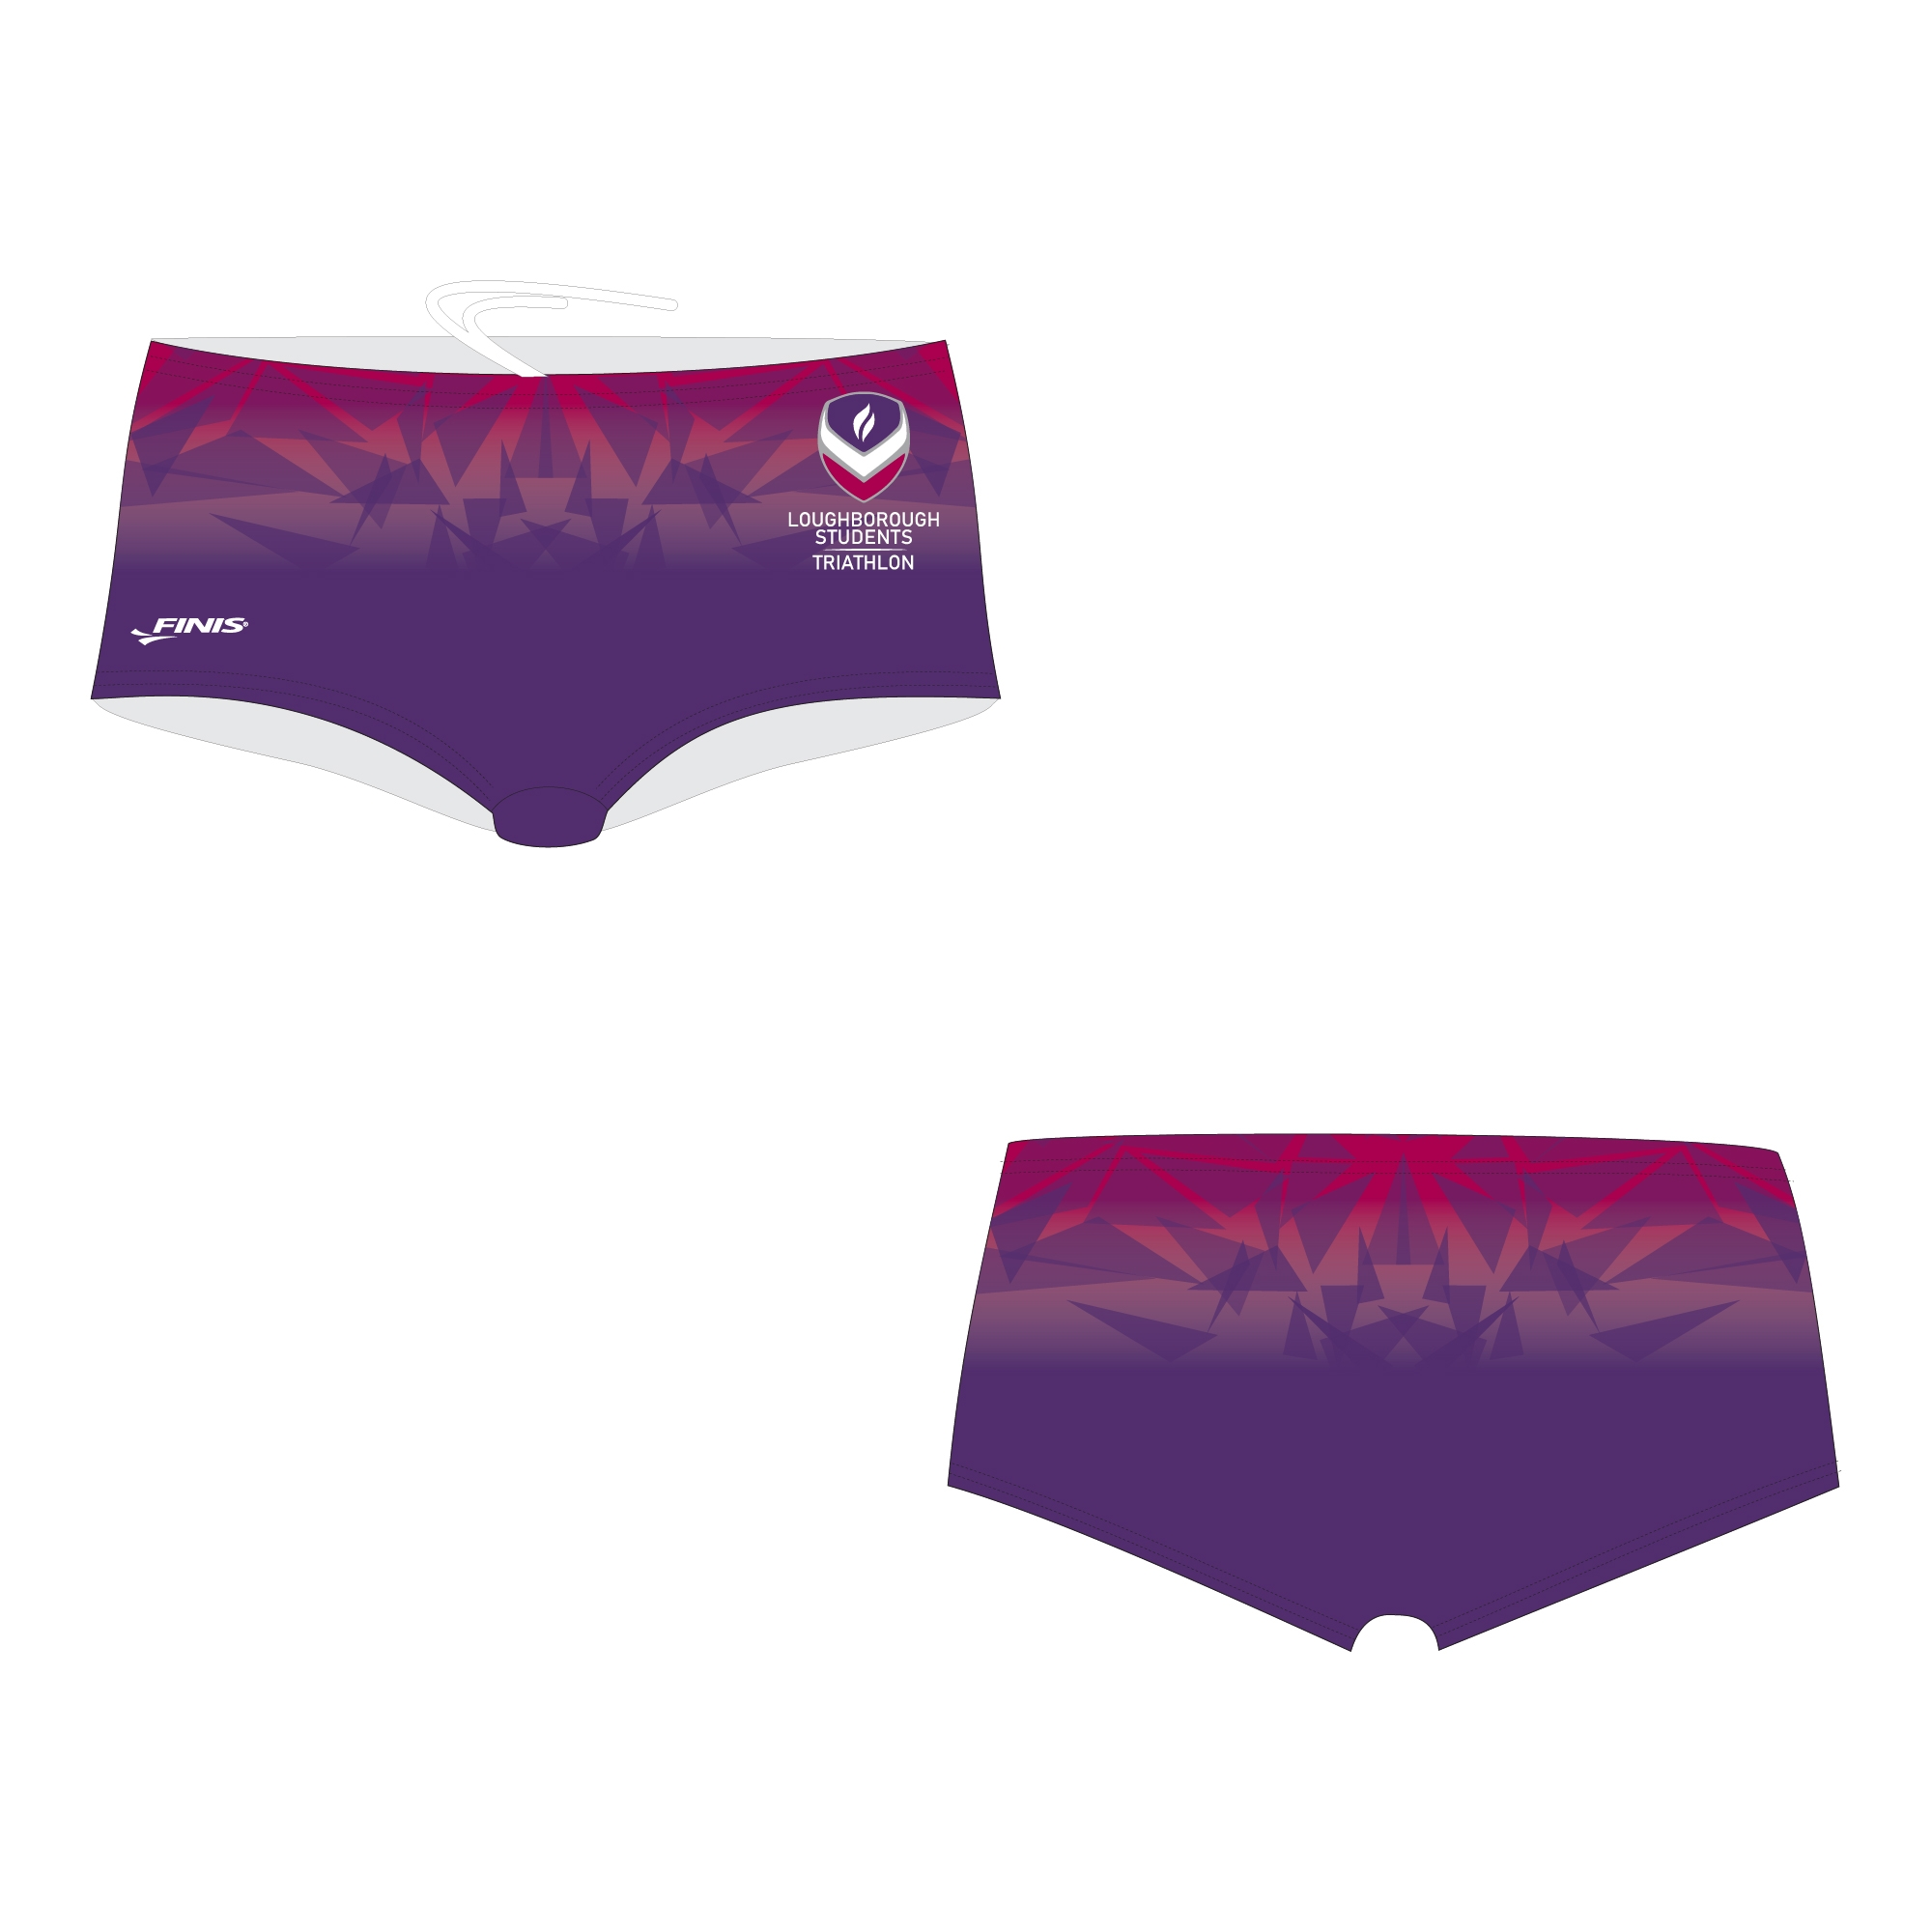 Loughborough students triathlon aqua short design proof with geometric mountains on a custom finis proof